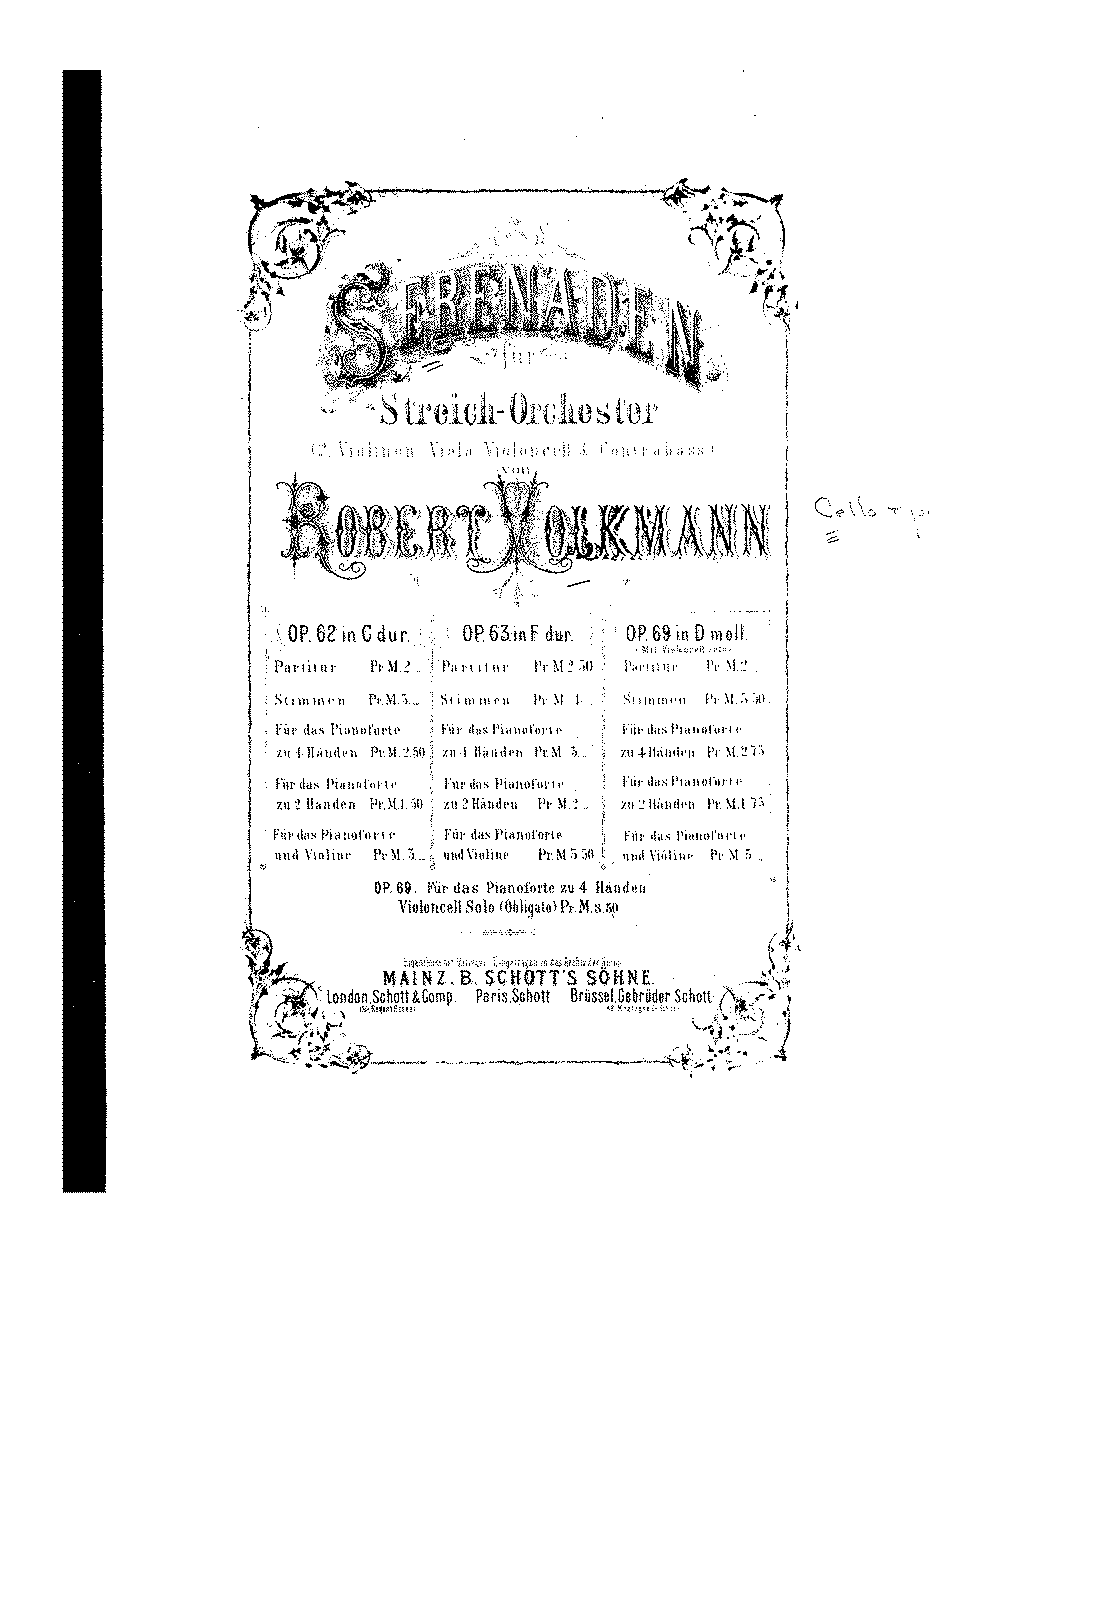 PMLP92542-Volkmann - Serenade No3 Op69 in D Major for Cello and 4hands Piano (Kossmaly) pianos.pdf